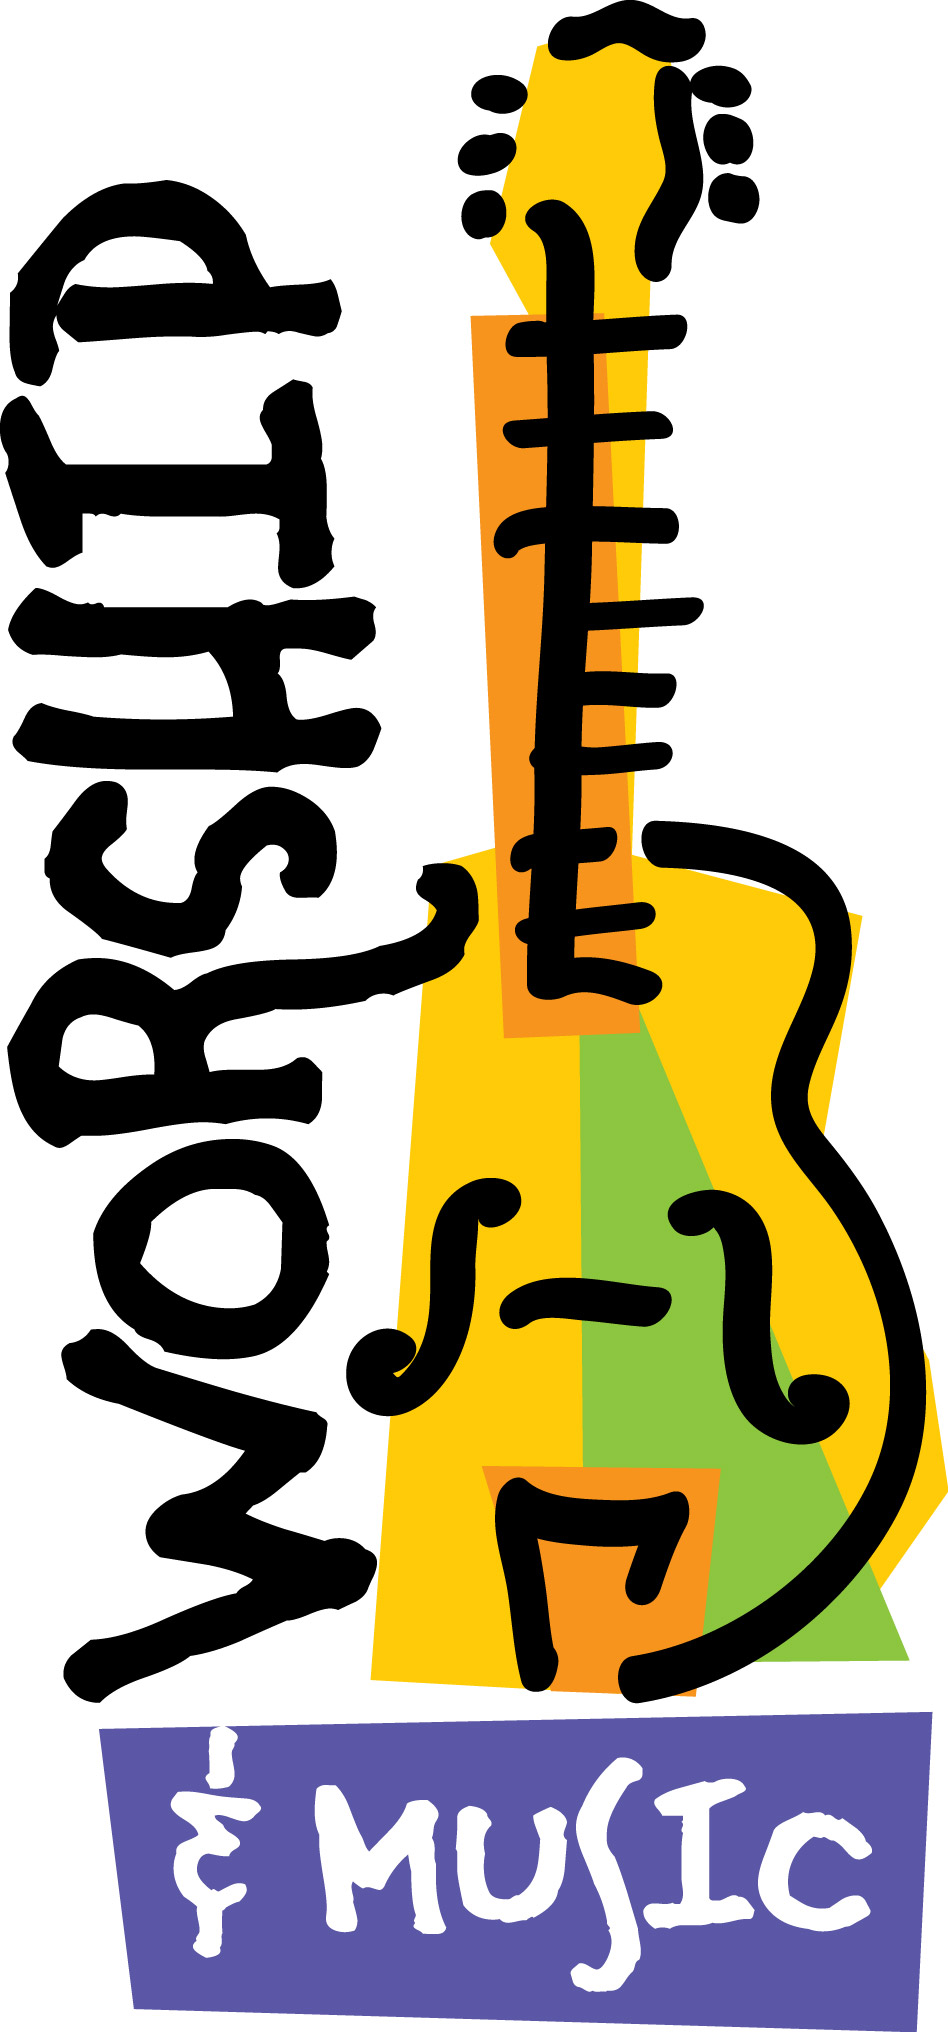 Free Worship Christian Cliparts, Download Free Clip Art, Free Clip.